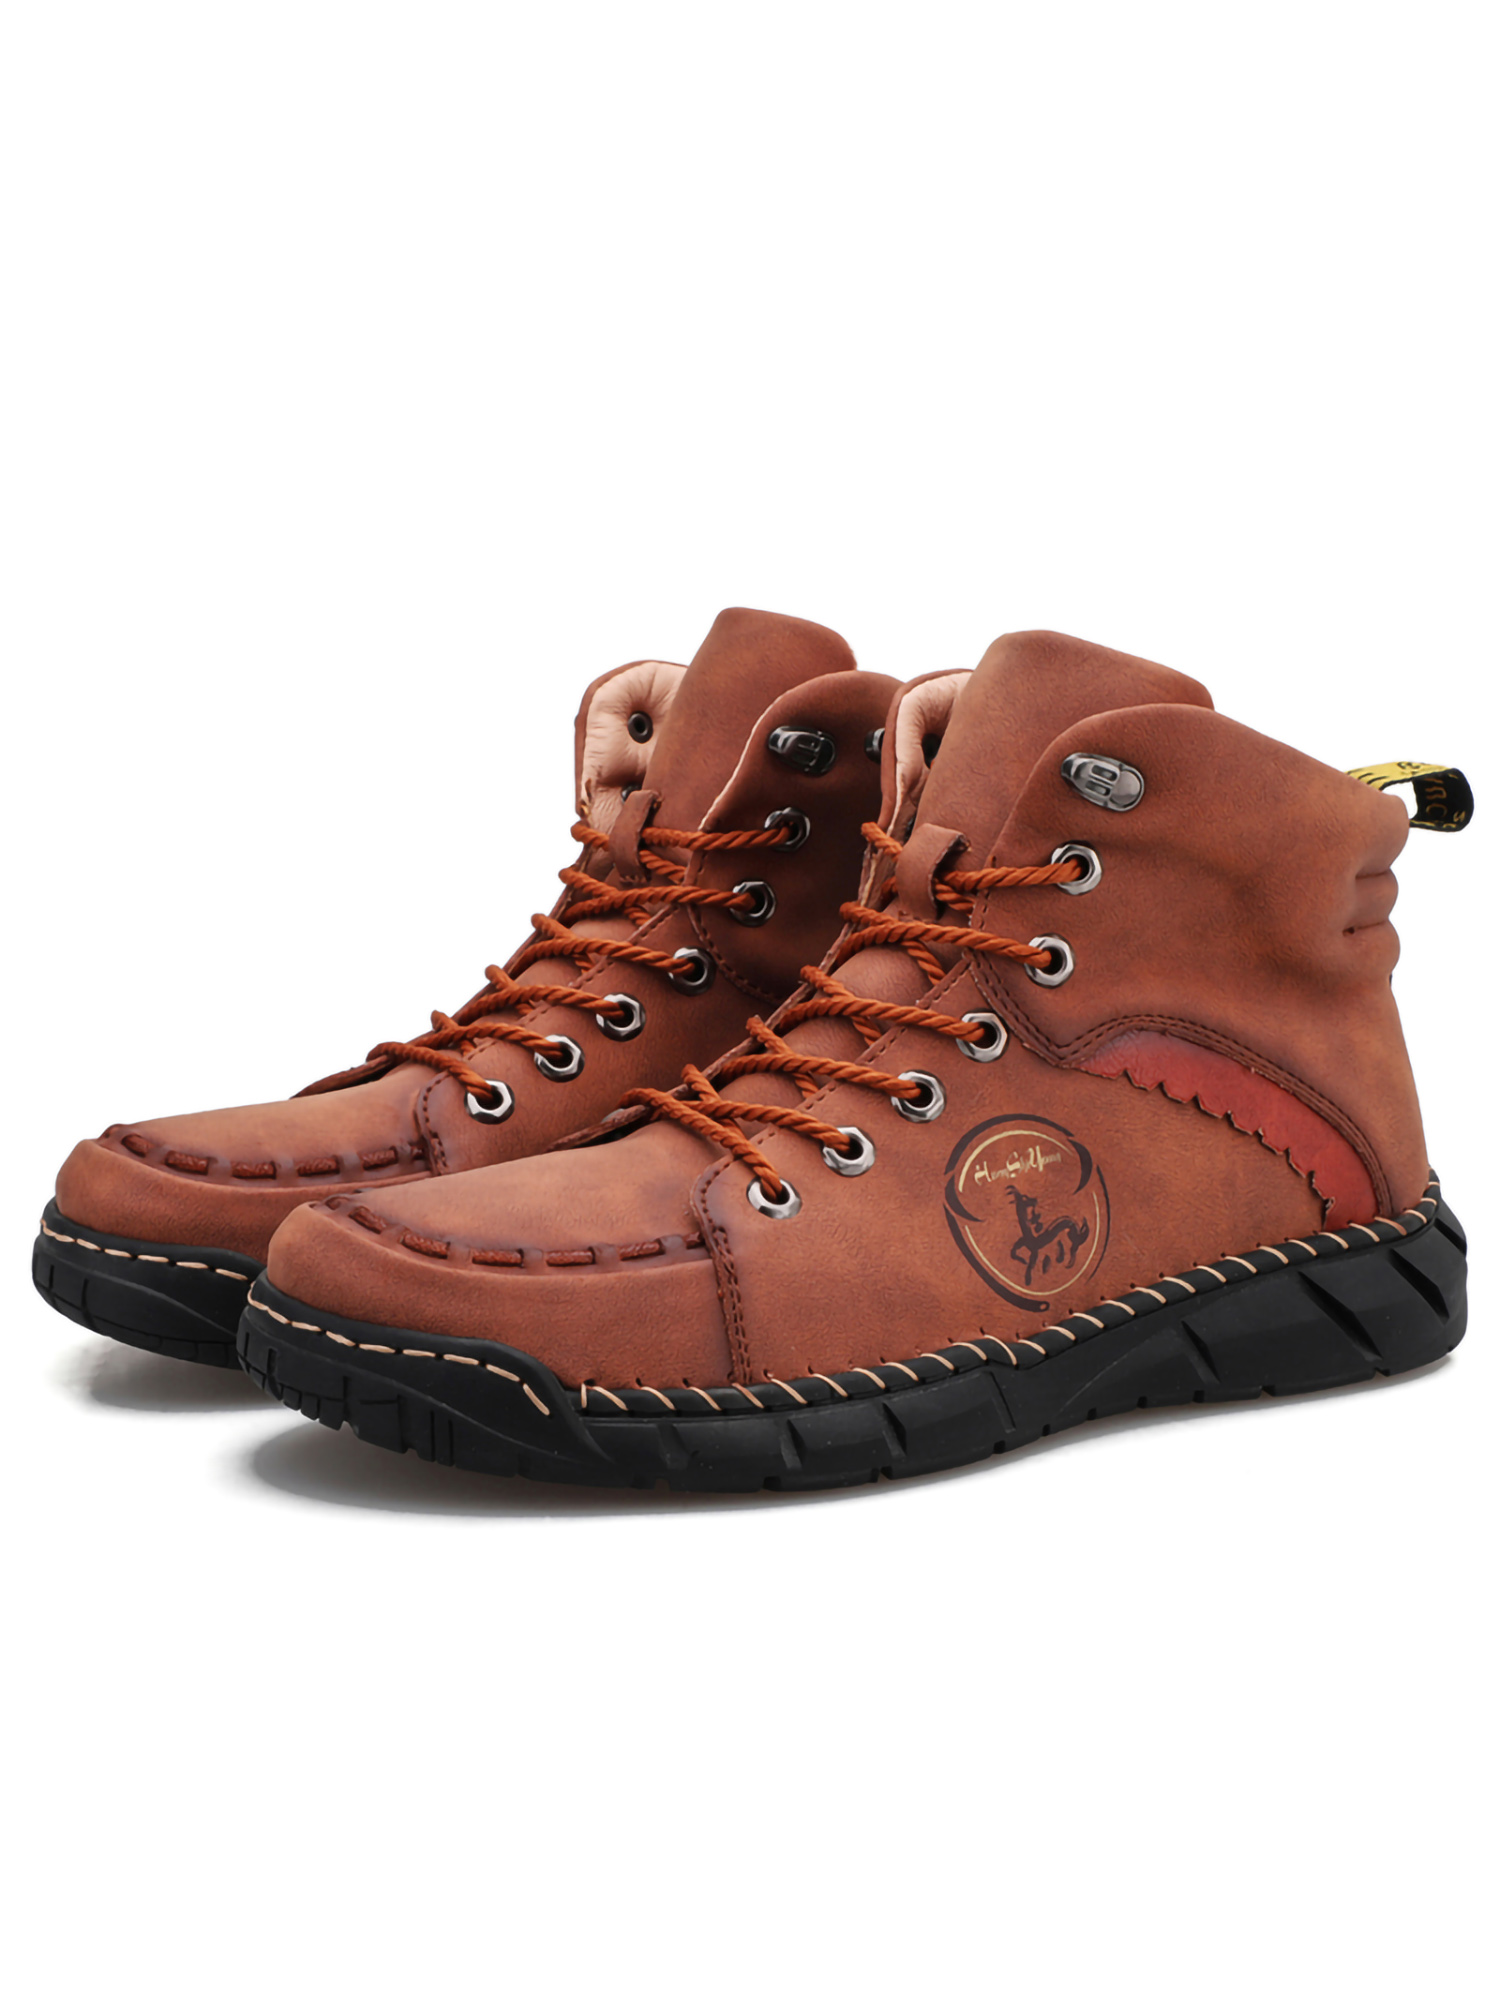 BOYS BLACK LACE UP CASUAL WINTER HI TOP ANKLE DESERT WALKING BOOTS SHOES SIZE